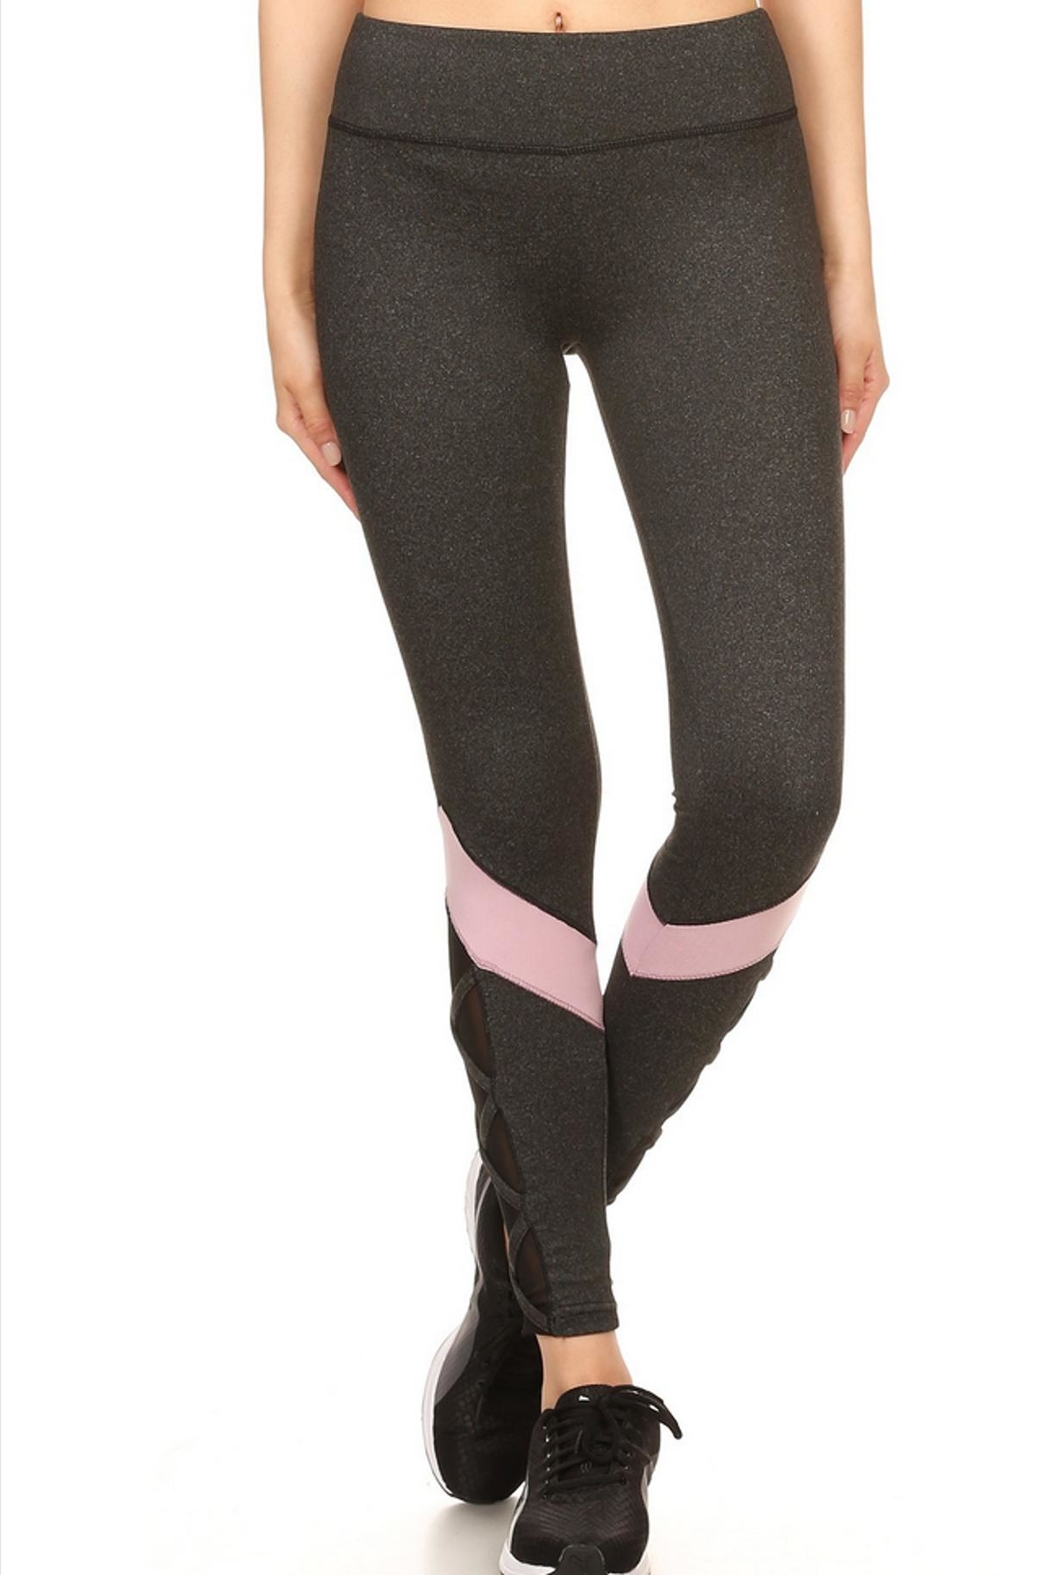 CHANDLEY Activewear Leggings - Front Cropped Image